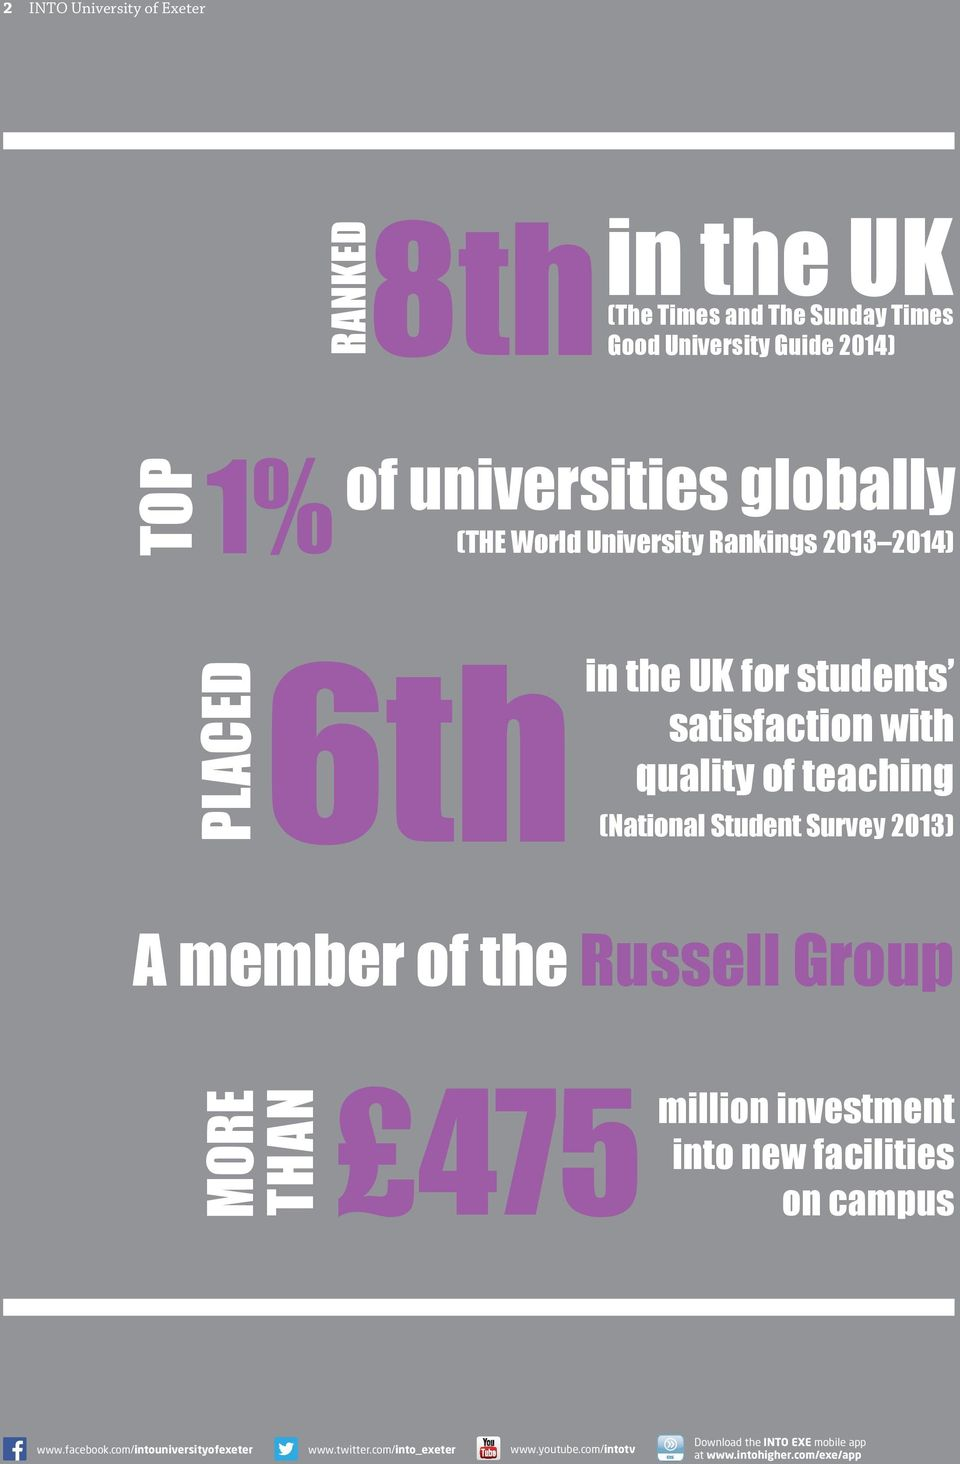 Student Survey 2013) A member of the Russell Group MORE THAN 475 million investment into new facilities on campus www.facebook.